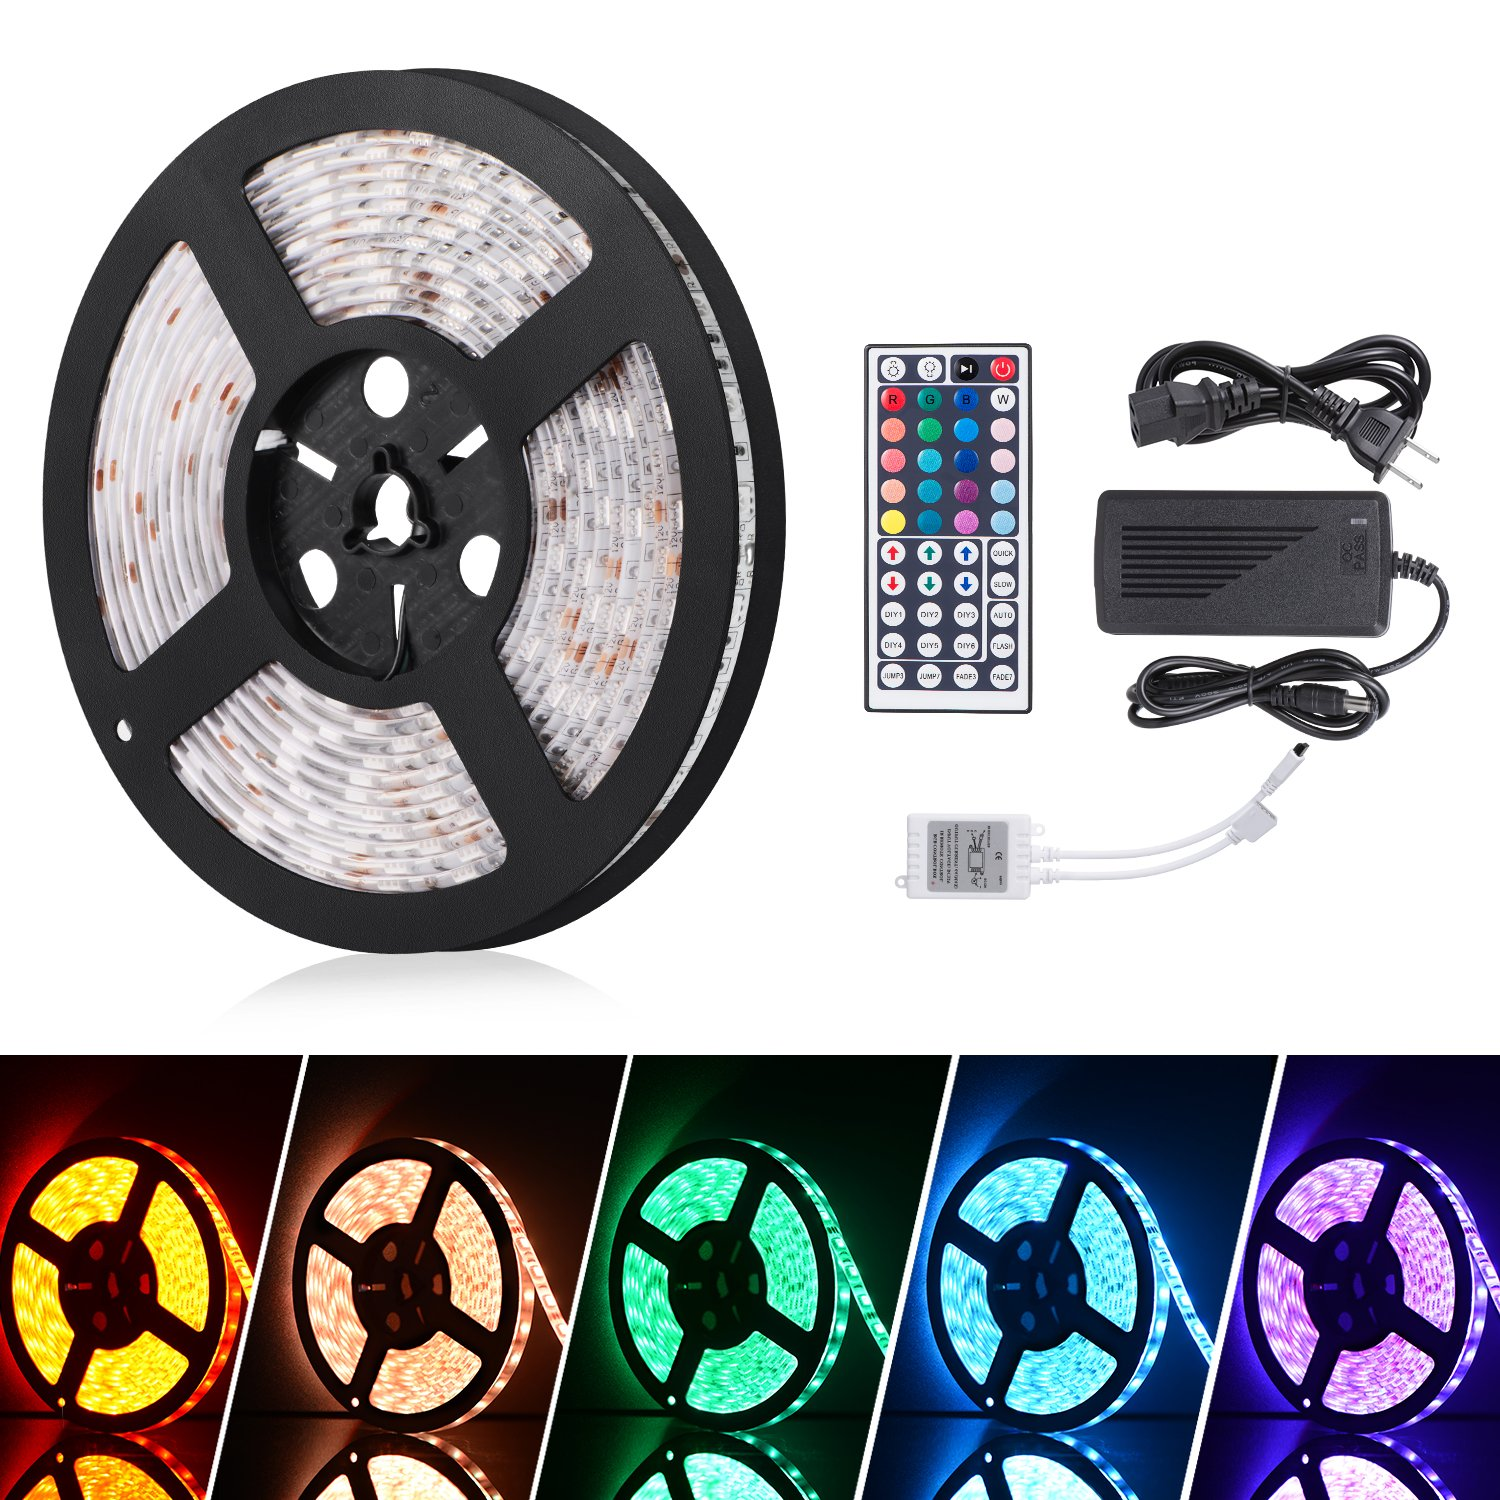 iHomy 16.4ft LED Flexible Light Strip, RGB 300